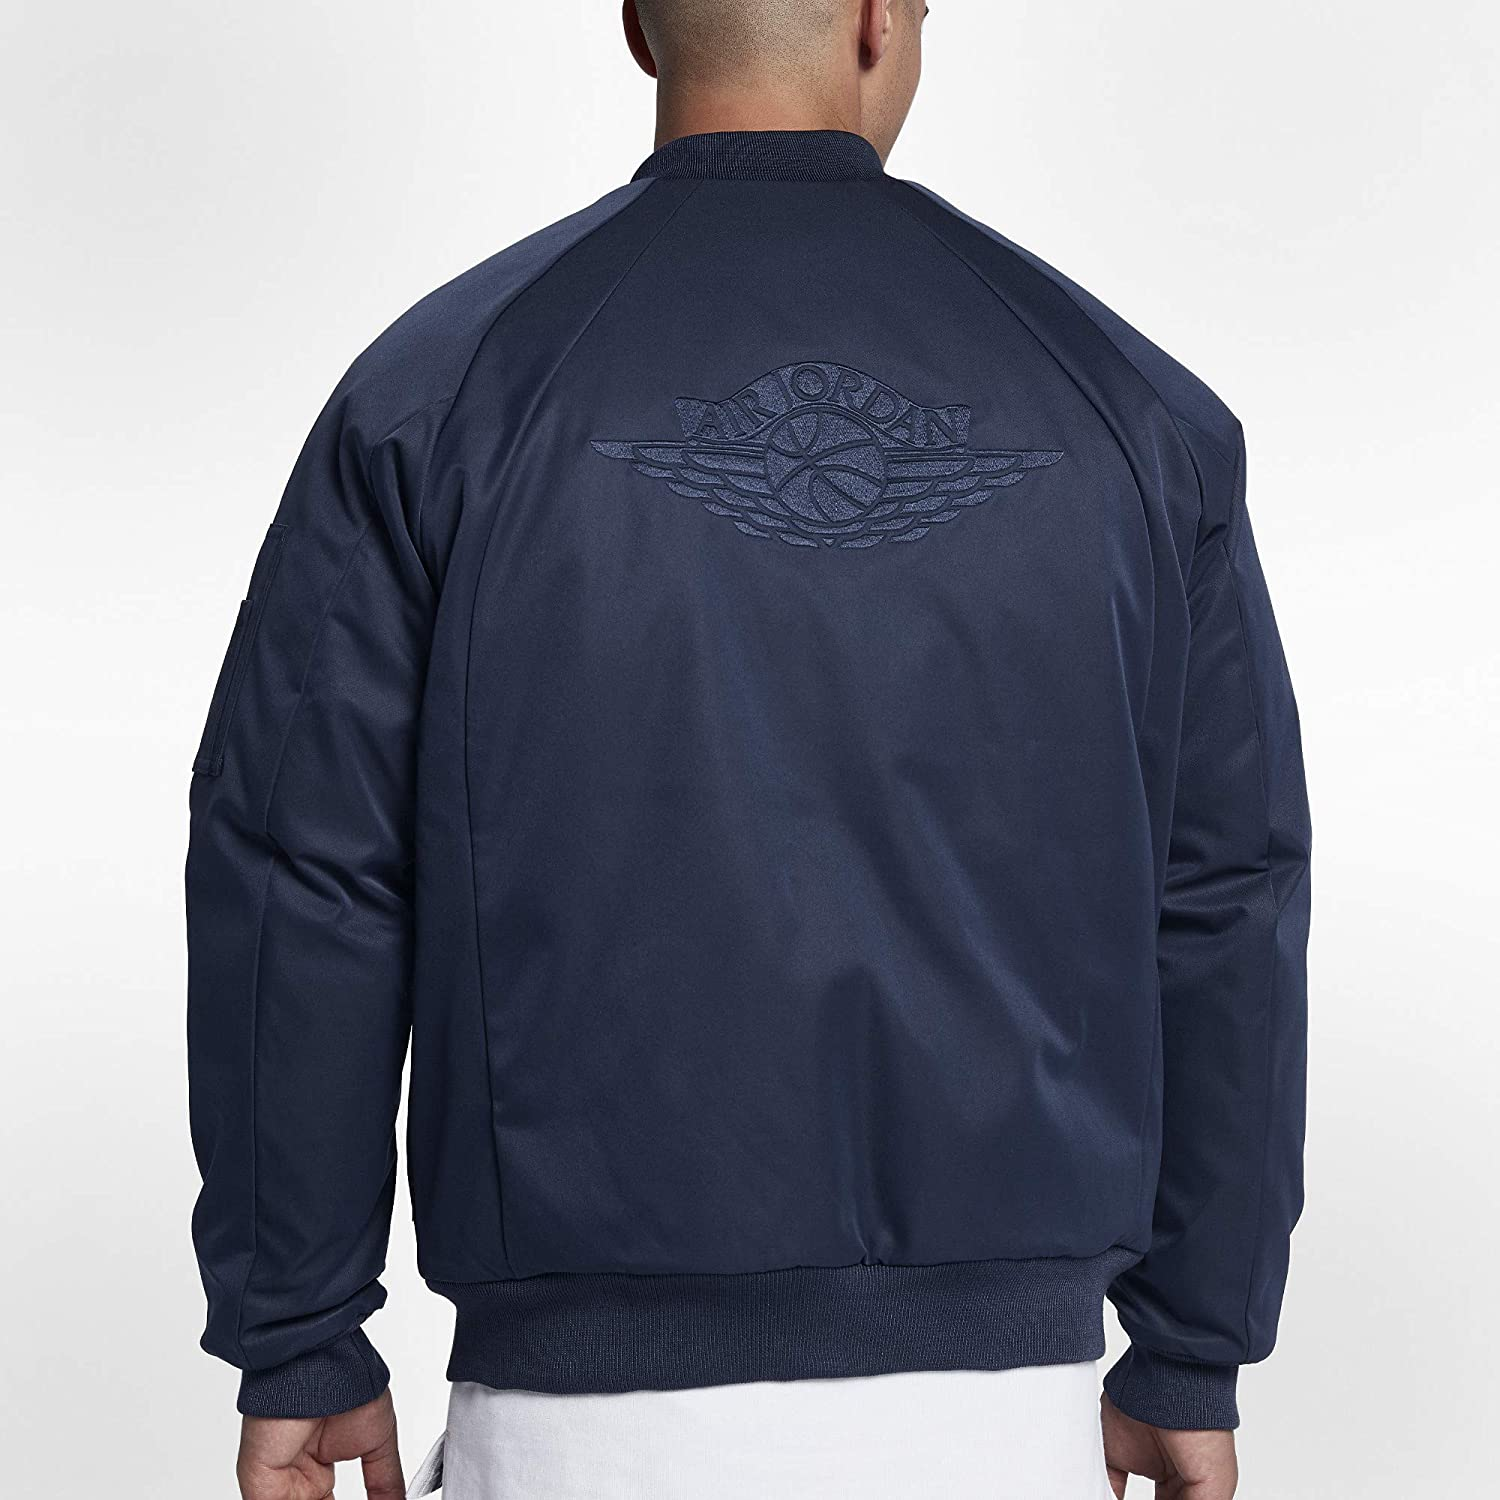 ad655b6cd Nike Jordan Sportswear Wings MA-1 Men's Jacket at Amazon Men's ...